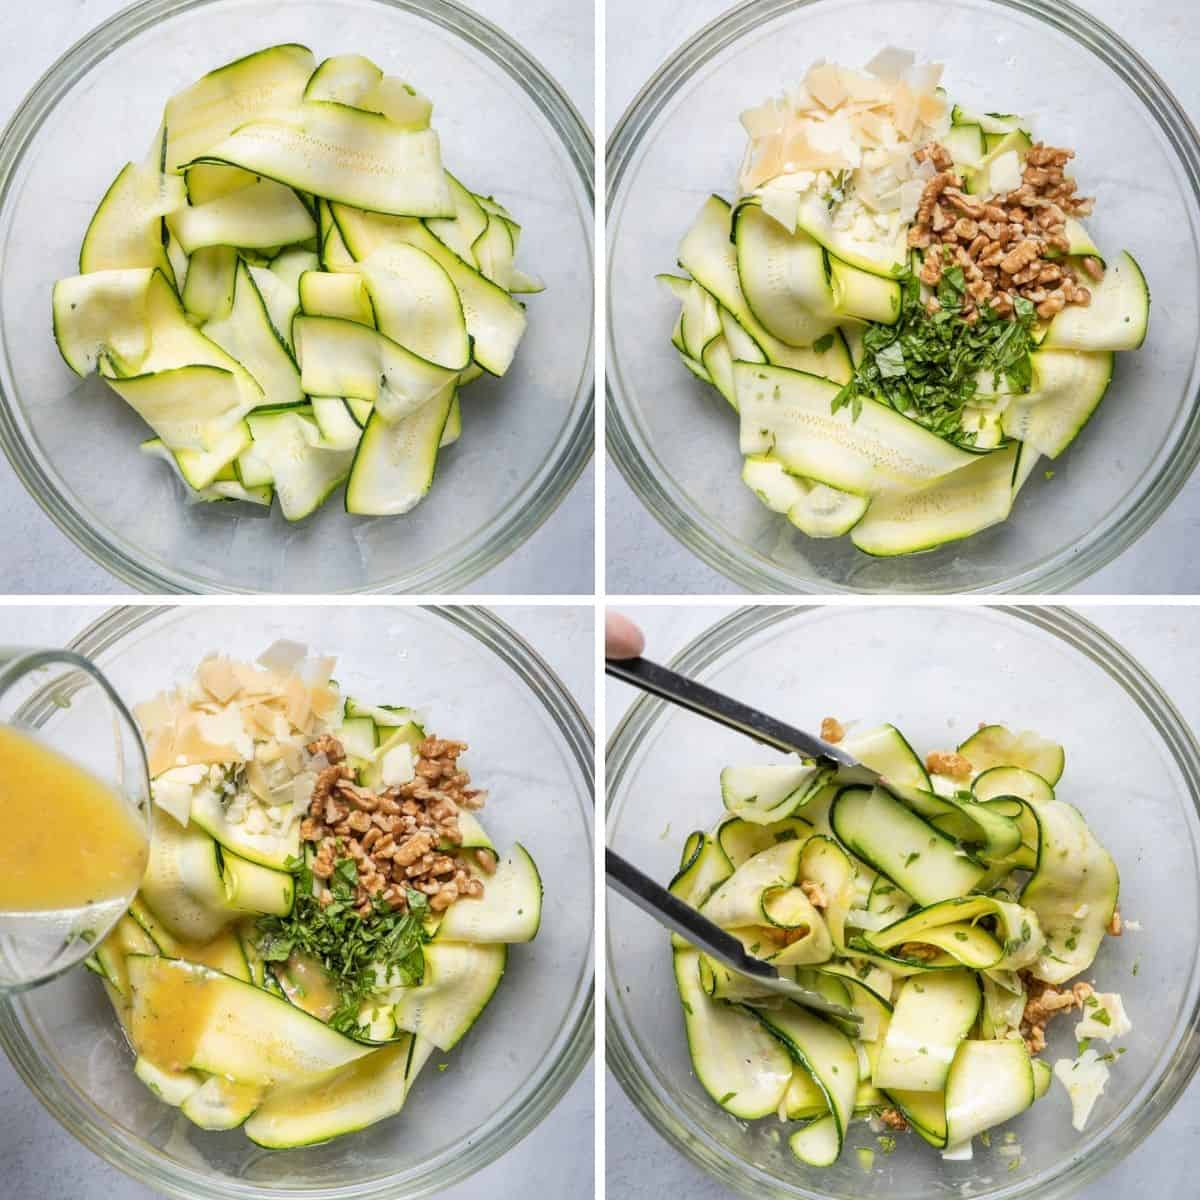 4 image collage to show the zucchini shaved in a bowl, ingredients getting added, olive oil getting added and then the salad getting tossed